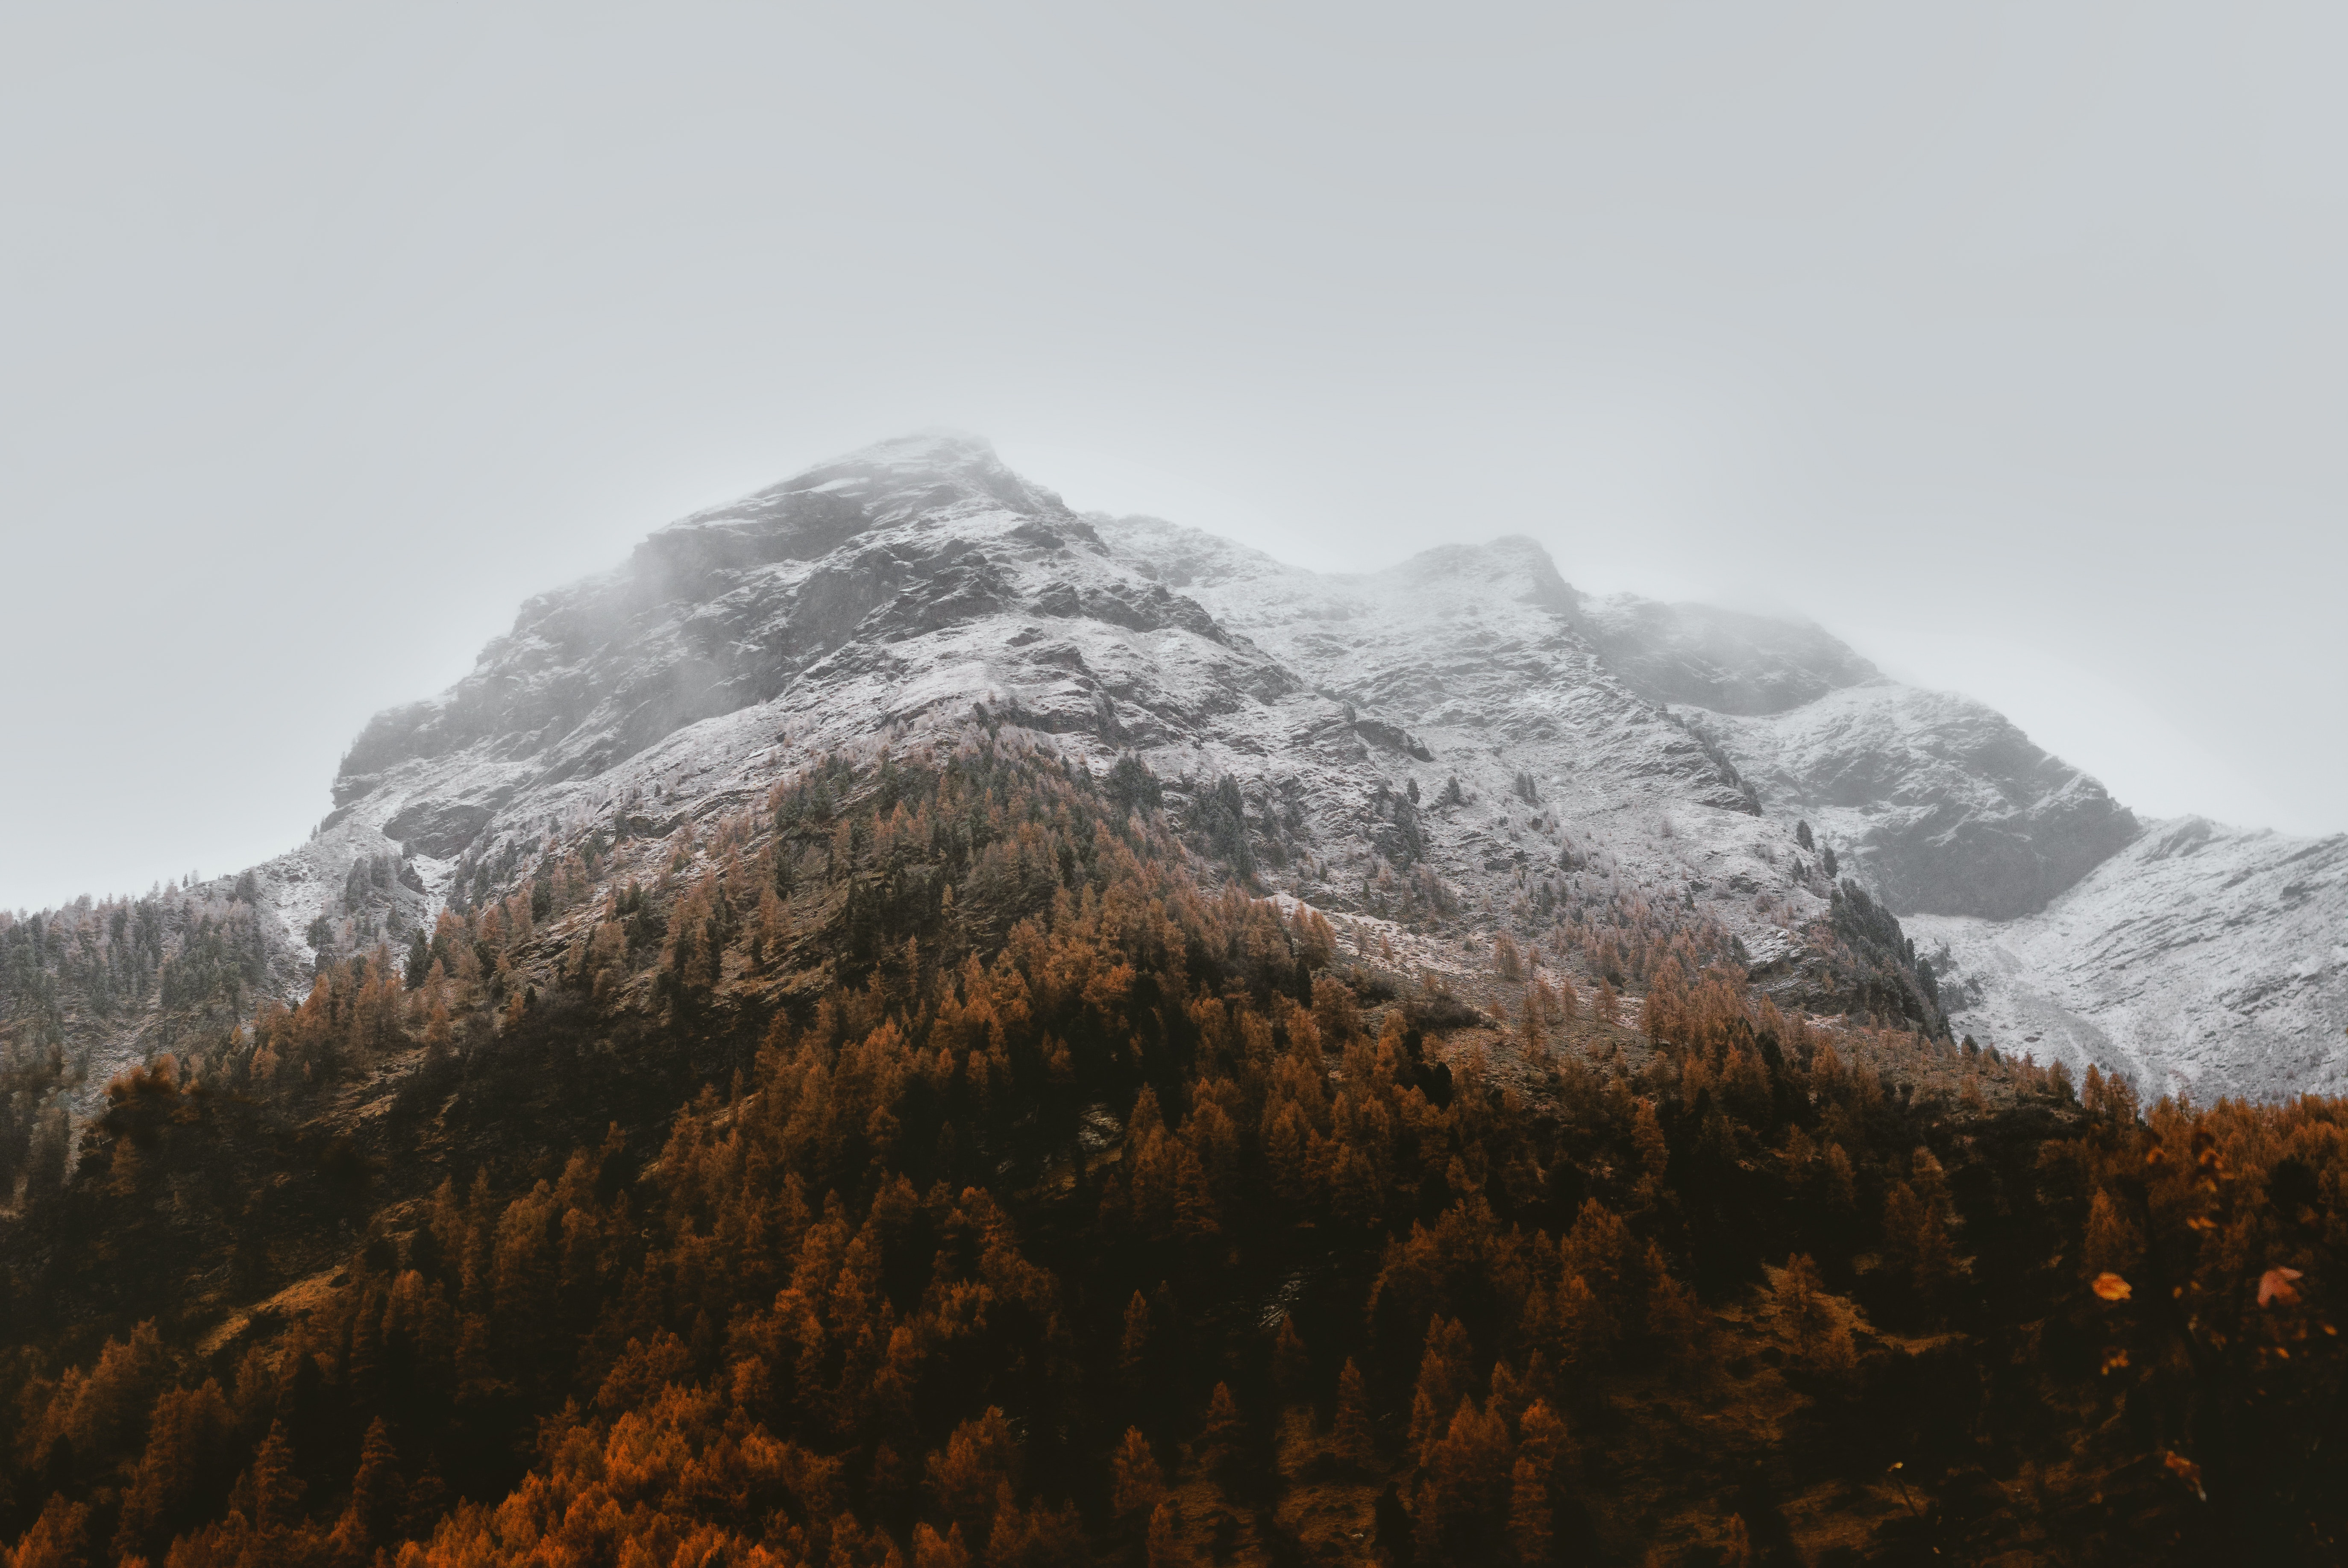 Aerial Photography Of Cloudy Mountain 183 Free Stock Photo